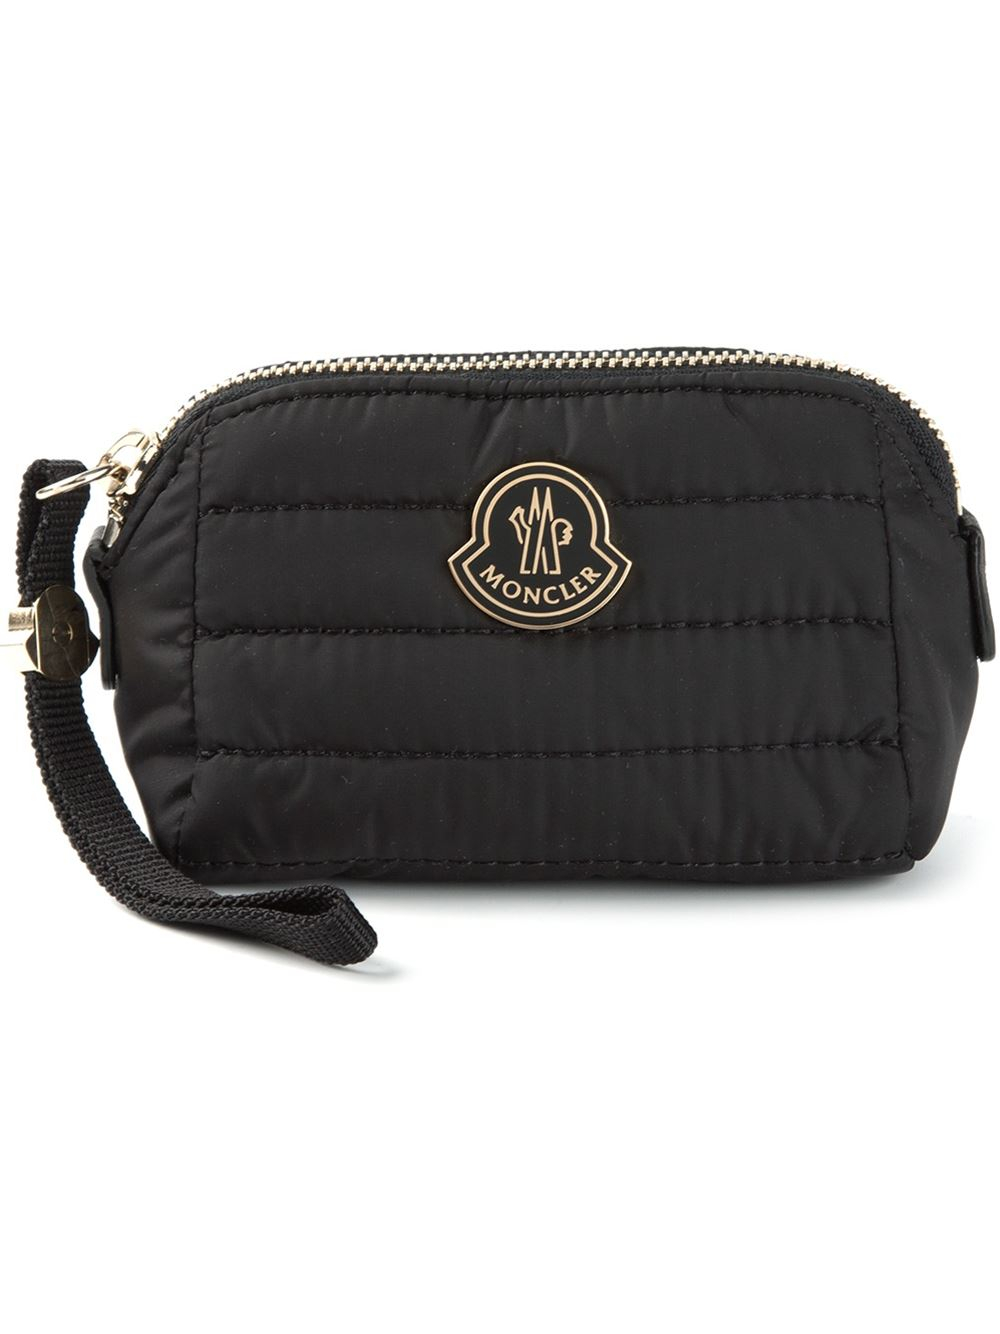 Bag At You Fashion Blog Hip E Bags White Backpack: Moncler Quilted Wash Bag In Black